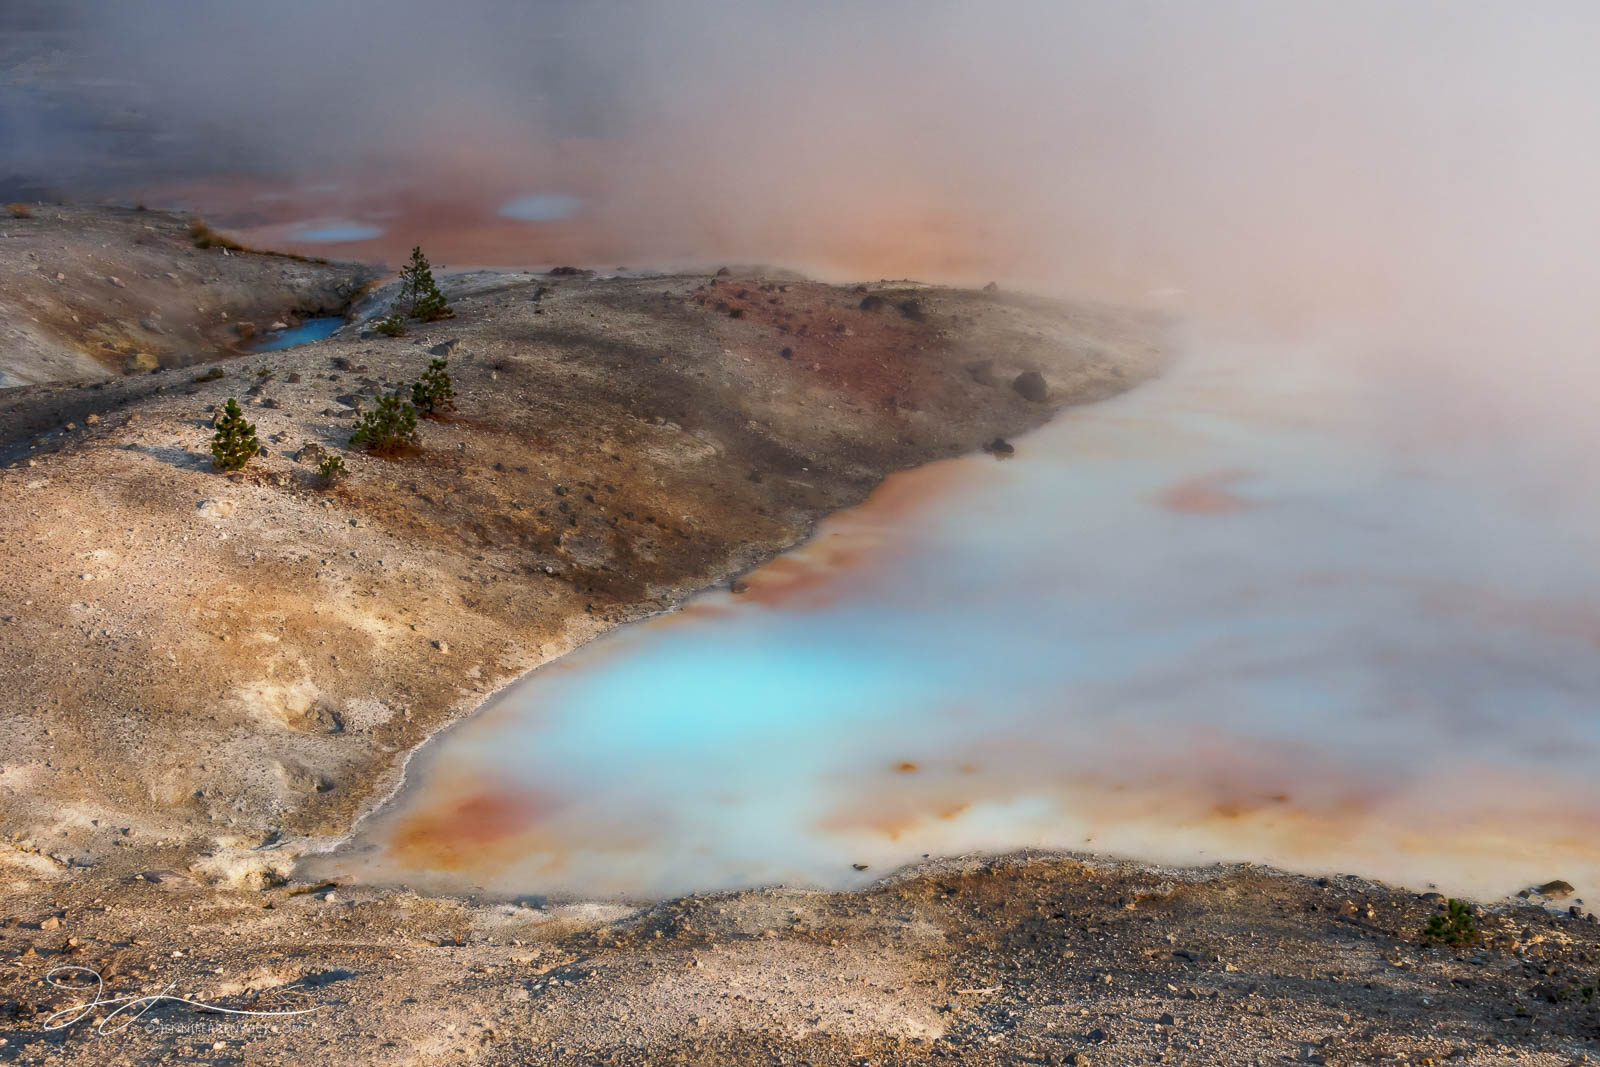 Norris Geyser Basin, Yellowstone national park, Porcelain Spring, morning, sunrise, steam, thermal feature, landscape, small scene, thermophiles, Wyoming, photo